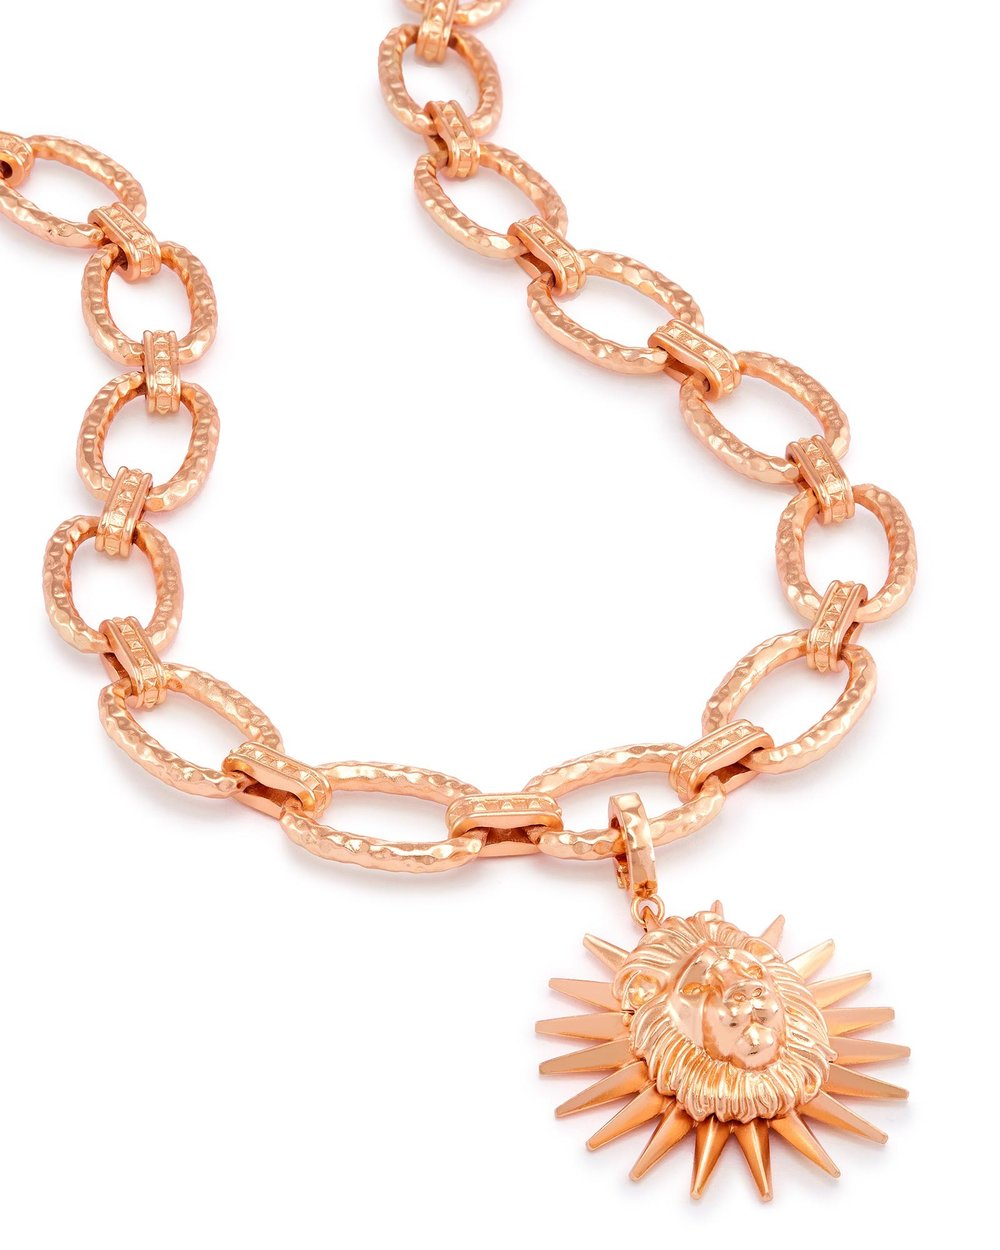 kendra-scott-athena-long-pendant-necklace-in-rose-gold_00_default_lg.jpg